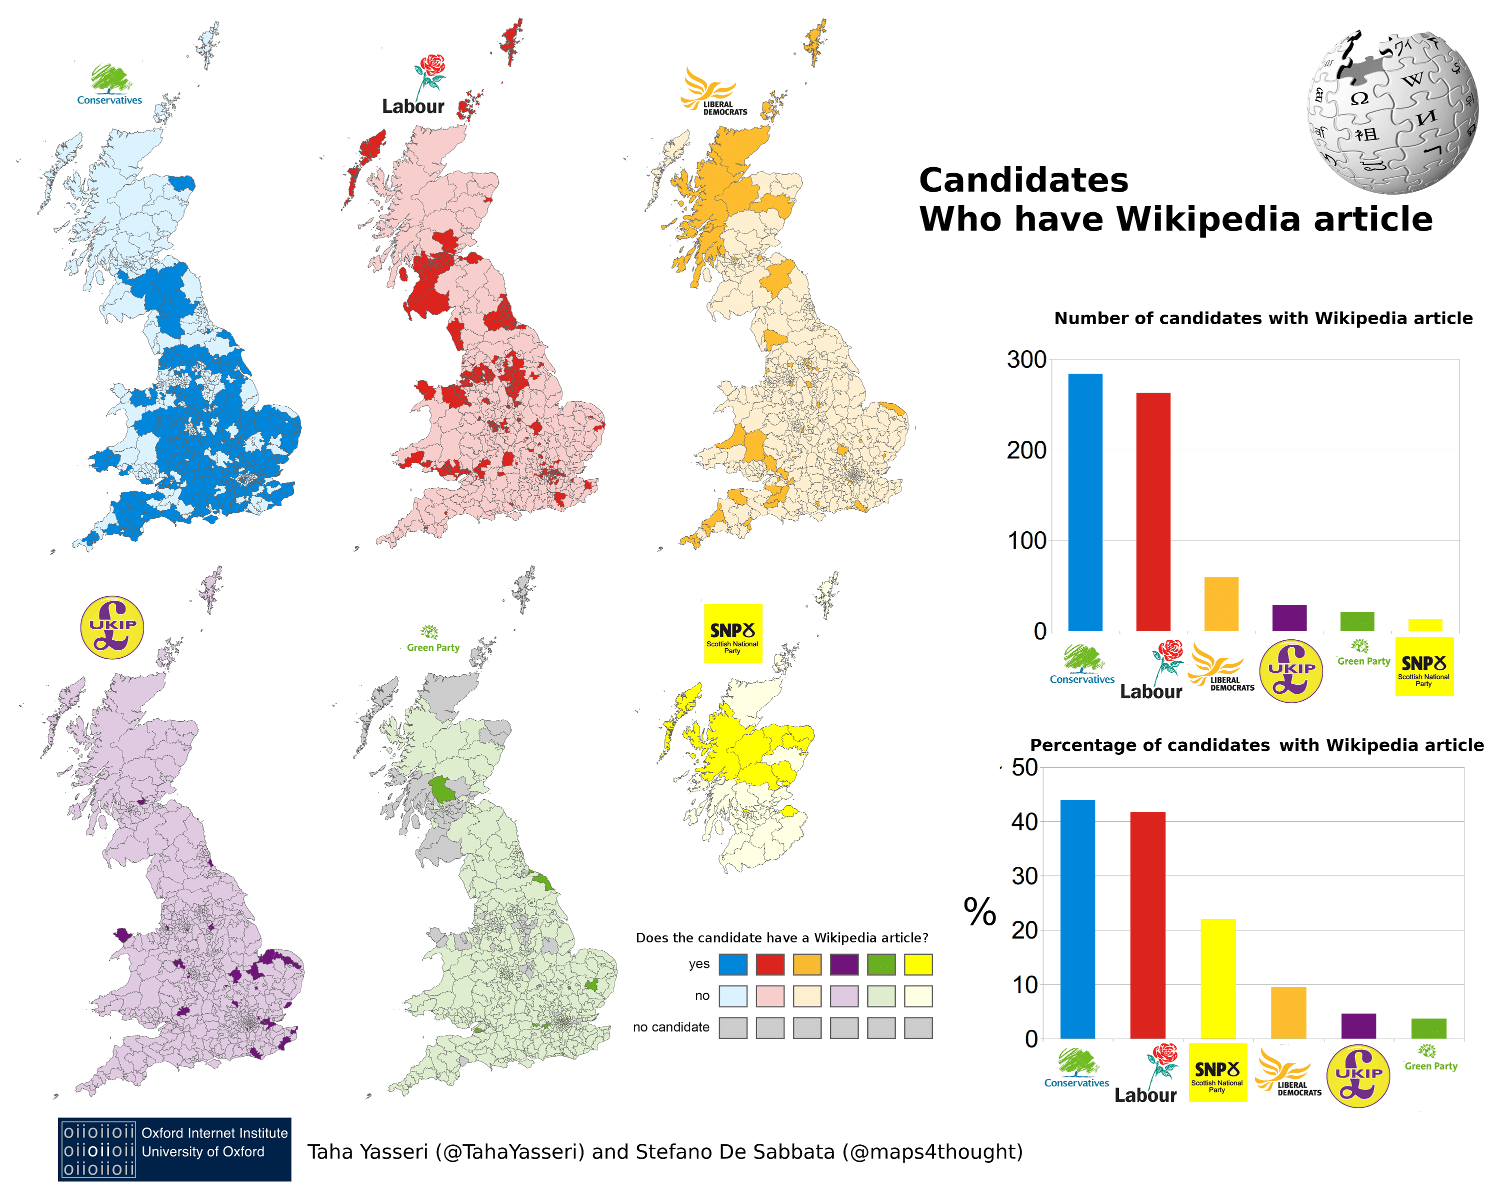 Geographical distribution of the candidates, whom Wikipedia has an article about.